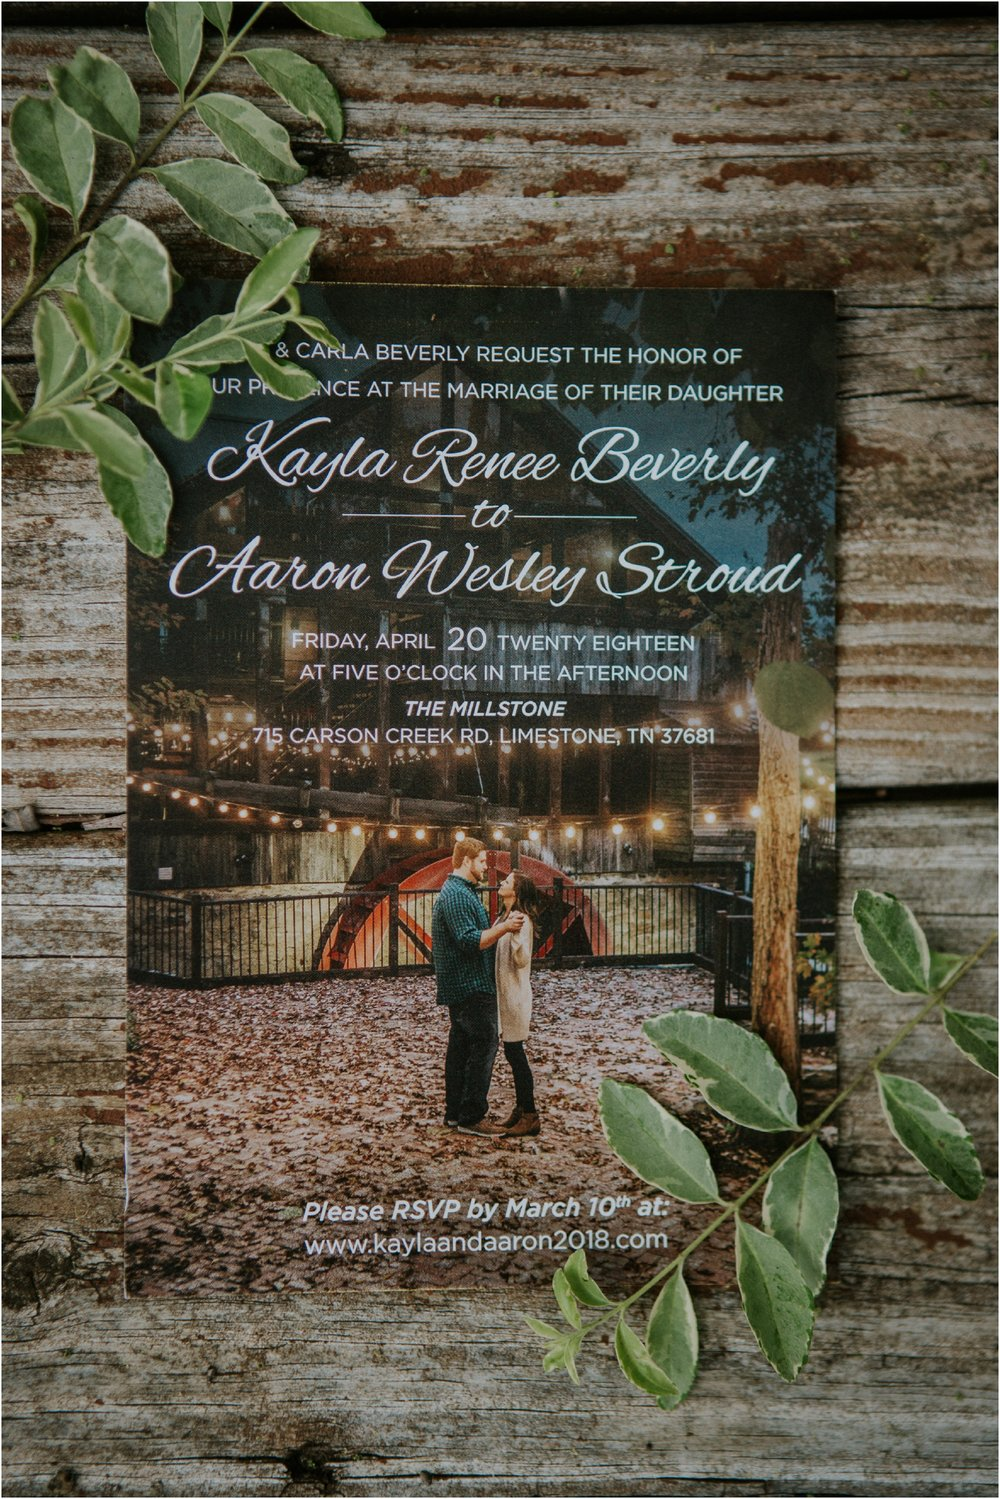 millstone-limestone-tn-tennessee-rustic-outdoors-pastel-lodge-cabin-venue-wedding-katy-sergent-photographer_0006.jpg